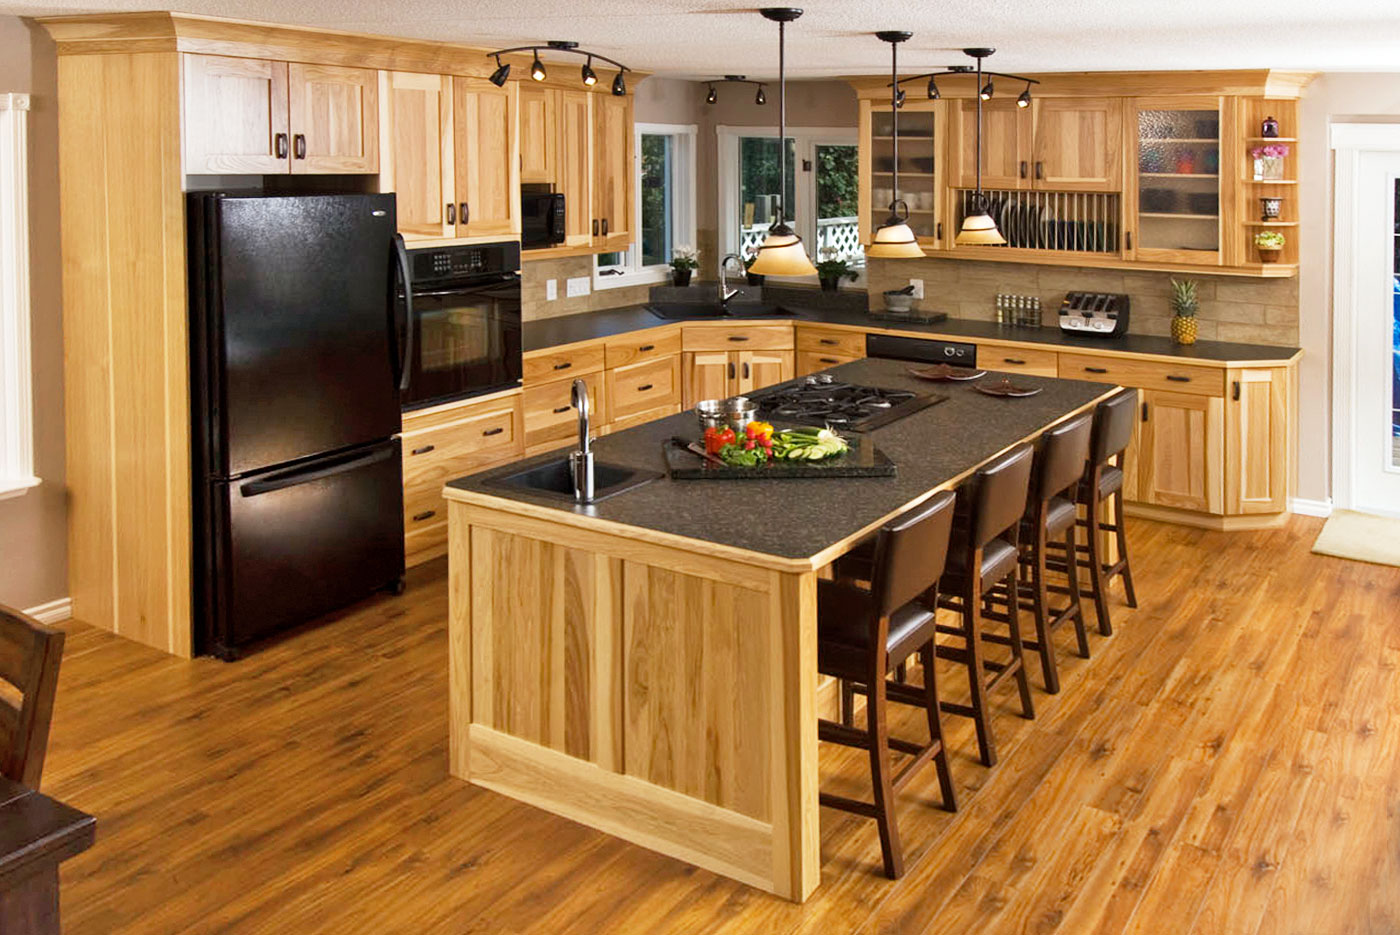 Natural Hickory wood kitchen by Superior Cabinets